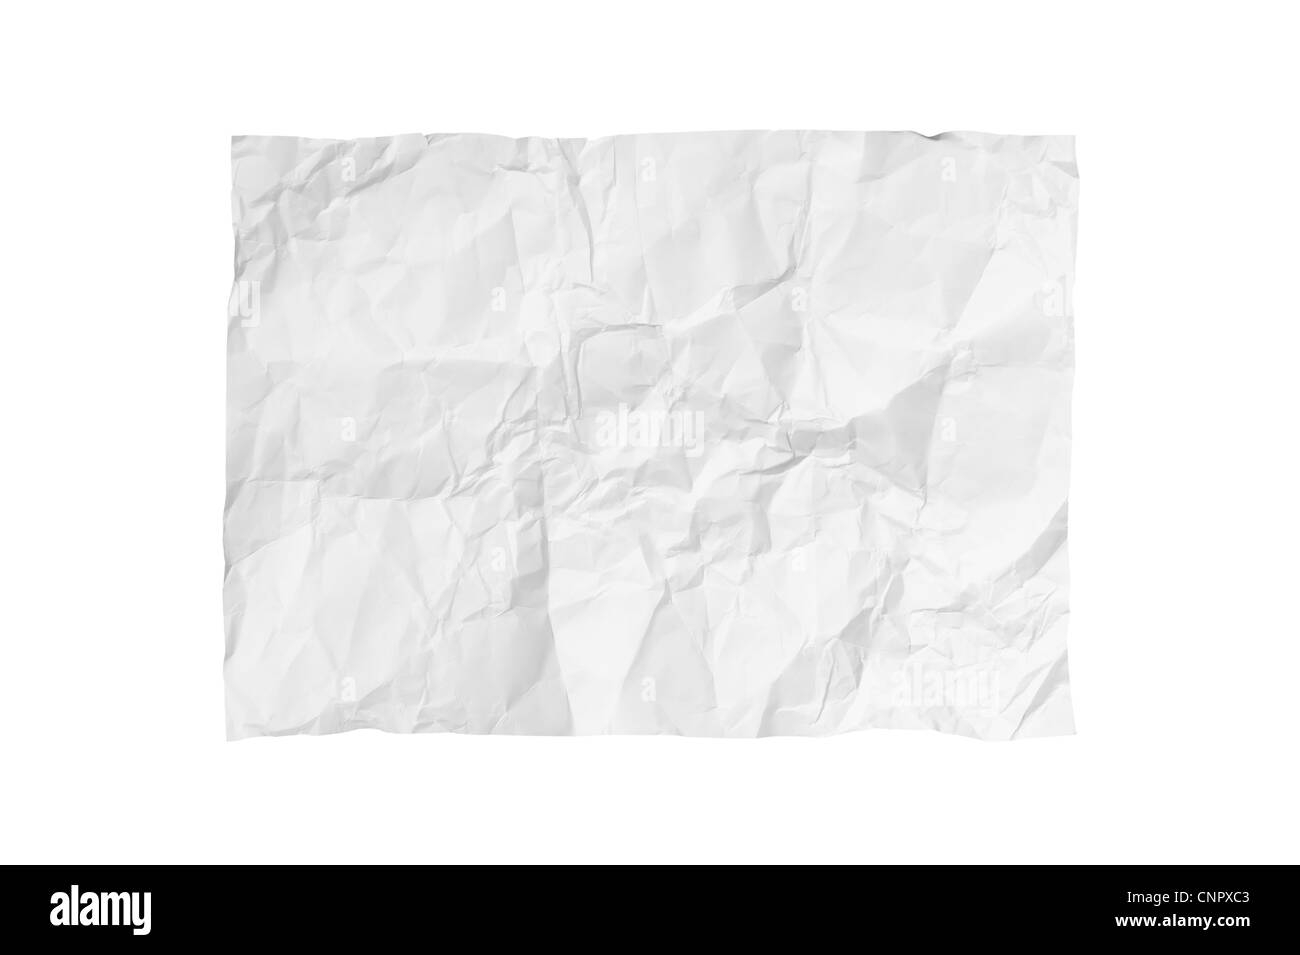 White crumpled paper on white background isolated - Stock Image